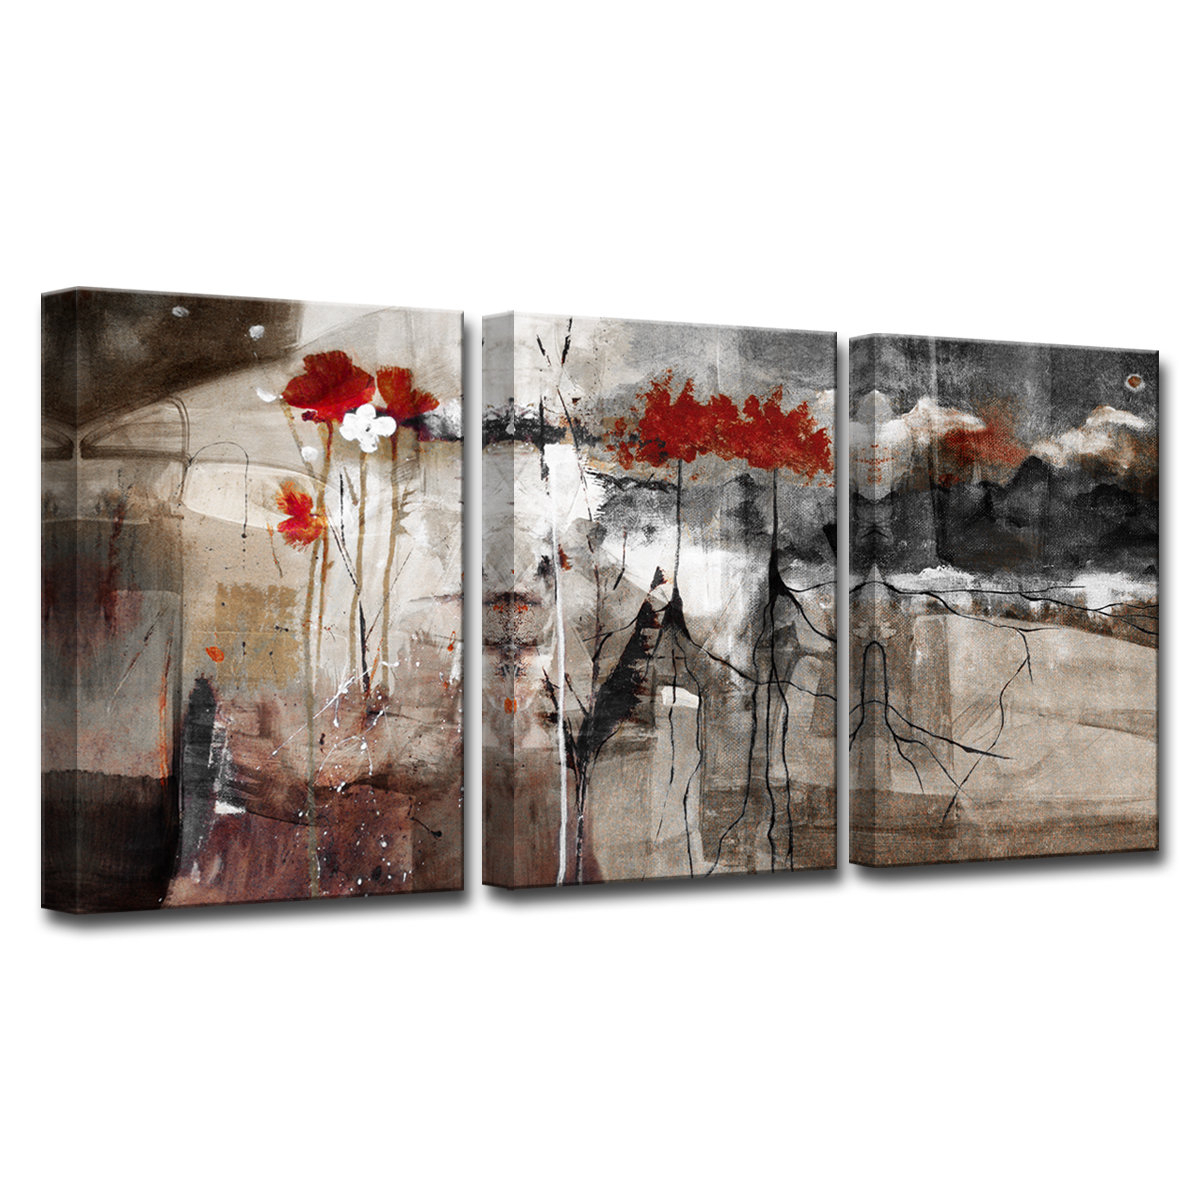 Wrought Studio 'abstract' 3 Piece Print Of Painting On Canvas Set In Trendy 3 Piece Wall Decor Sets By Wrought Studio (Gallery 5 of 20)